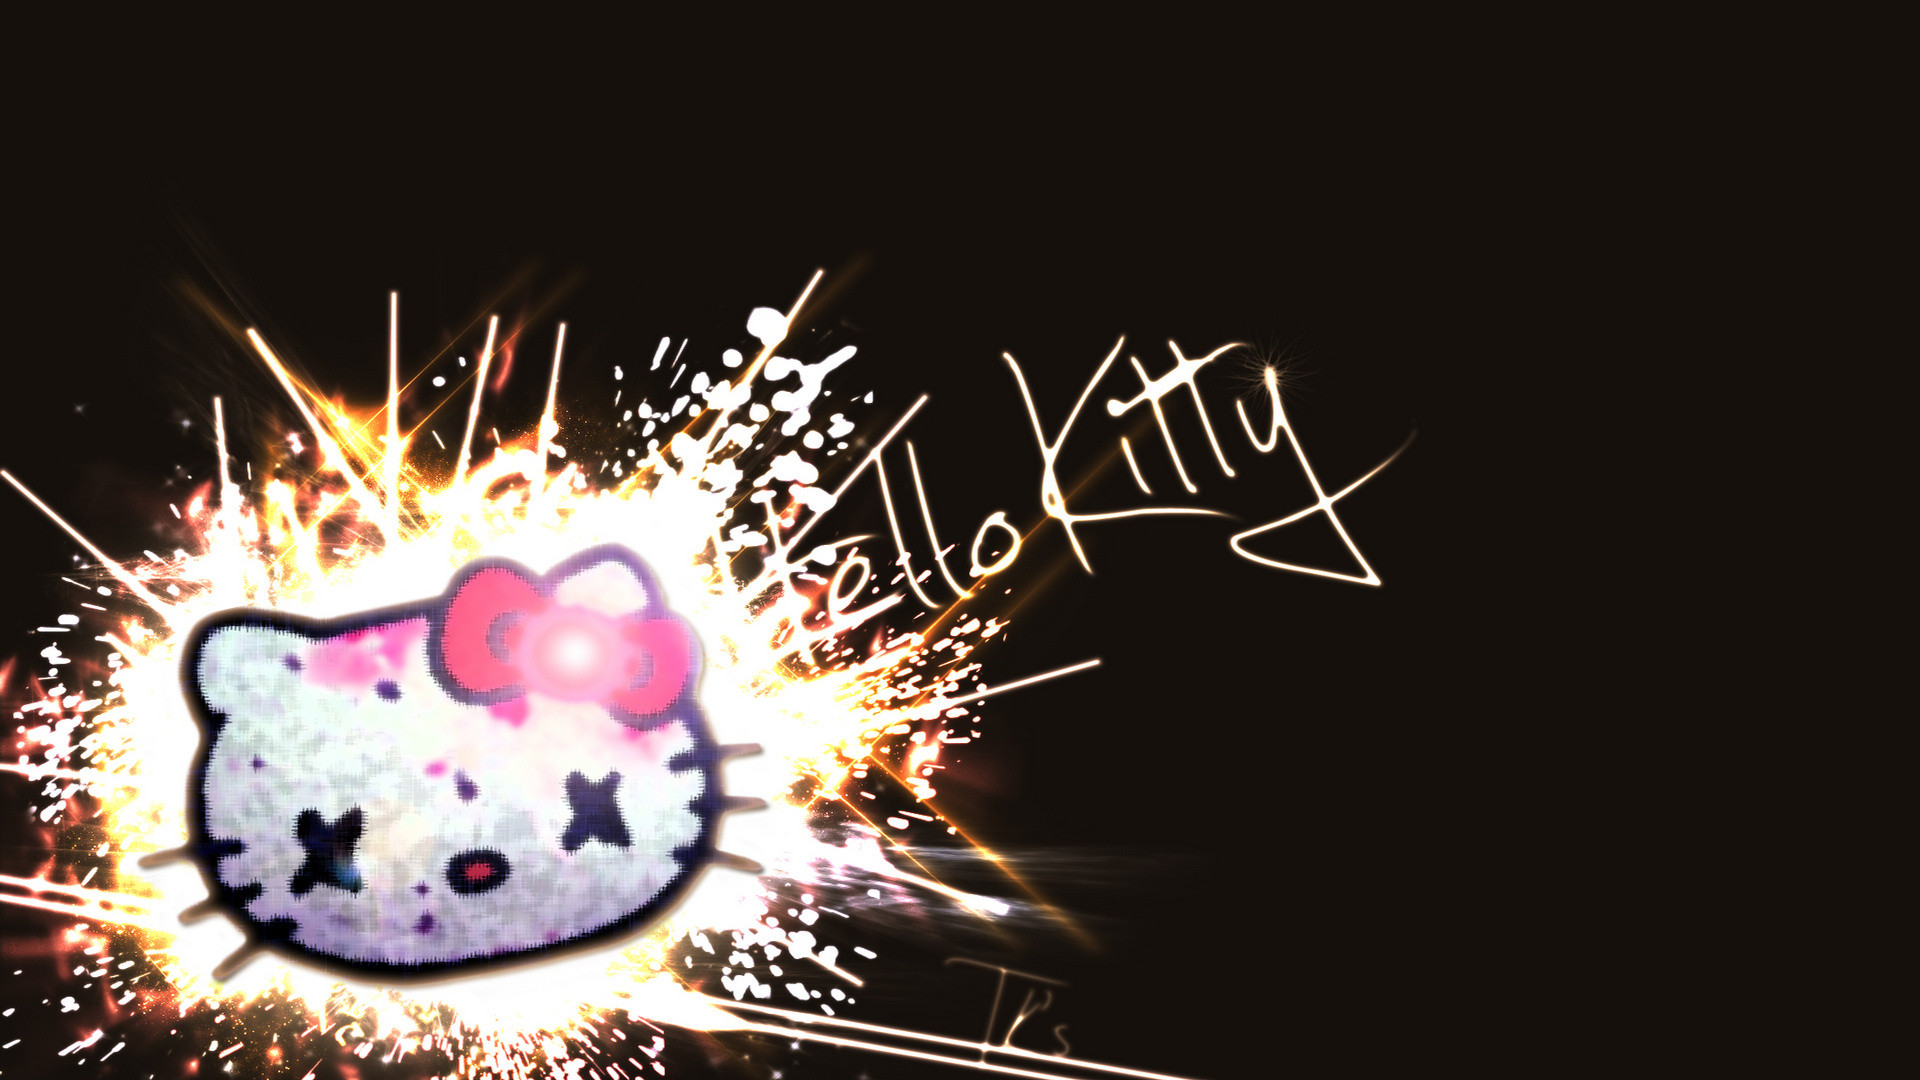 1920x1080 Hello Kitty Black Wallpapers Hd Resolution